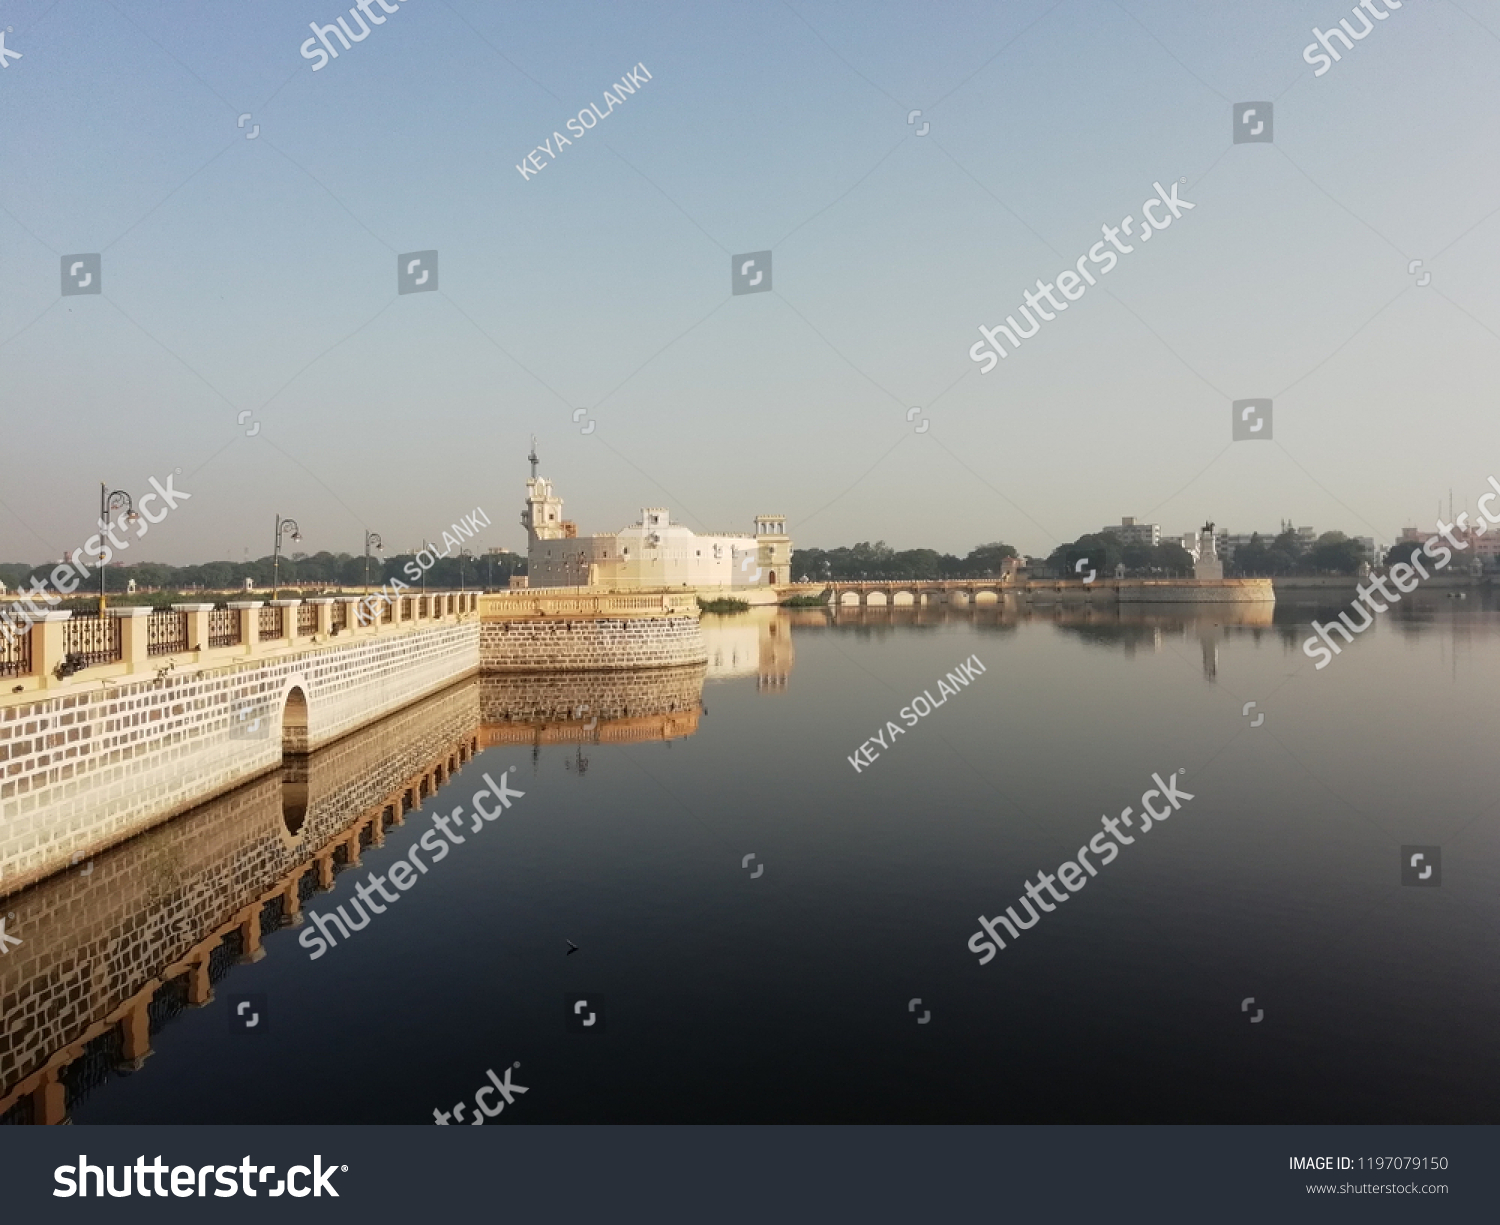 stock-photo-lakhota-palace-situated-in-j